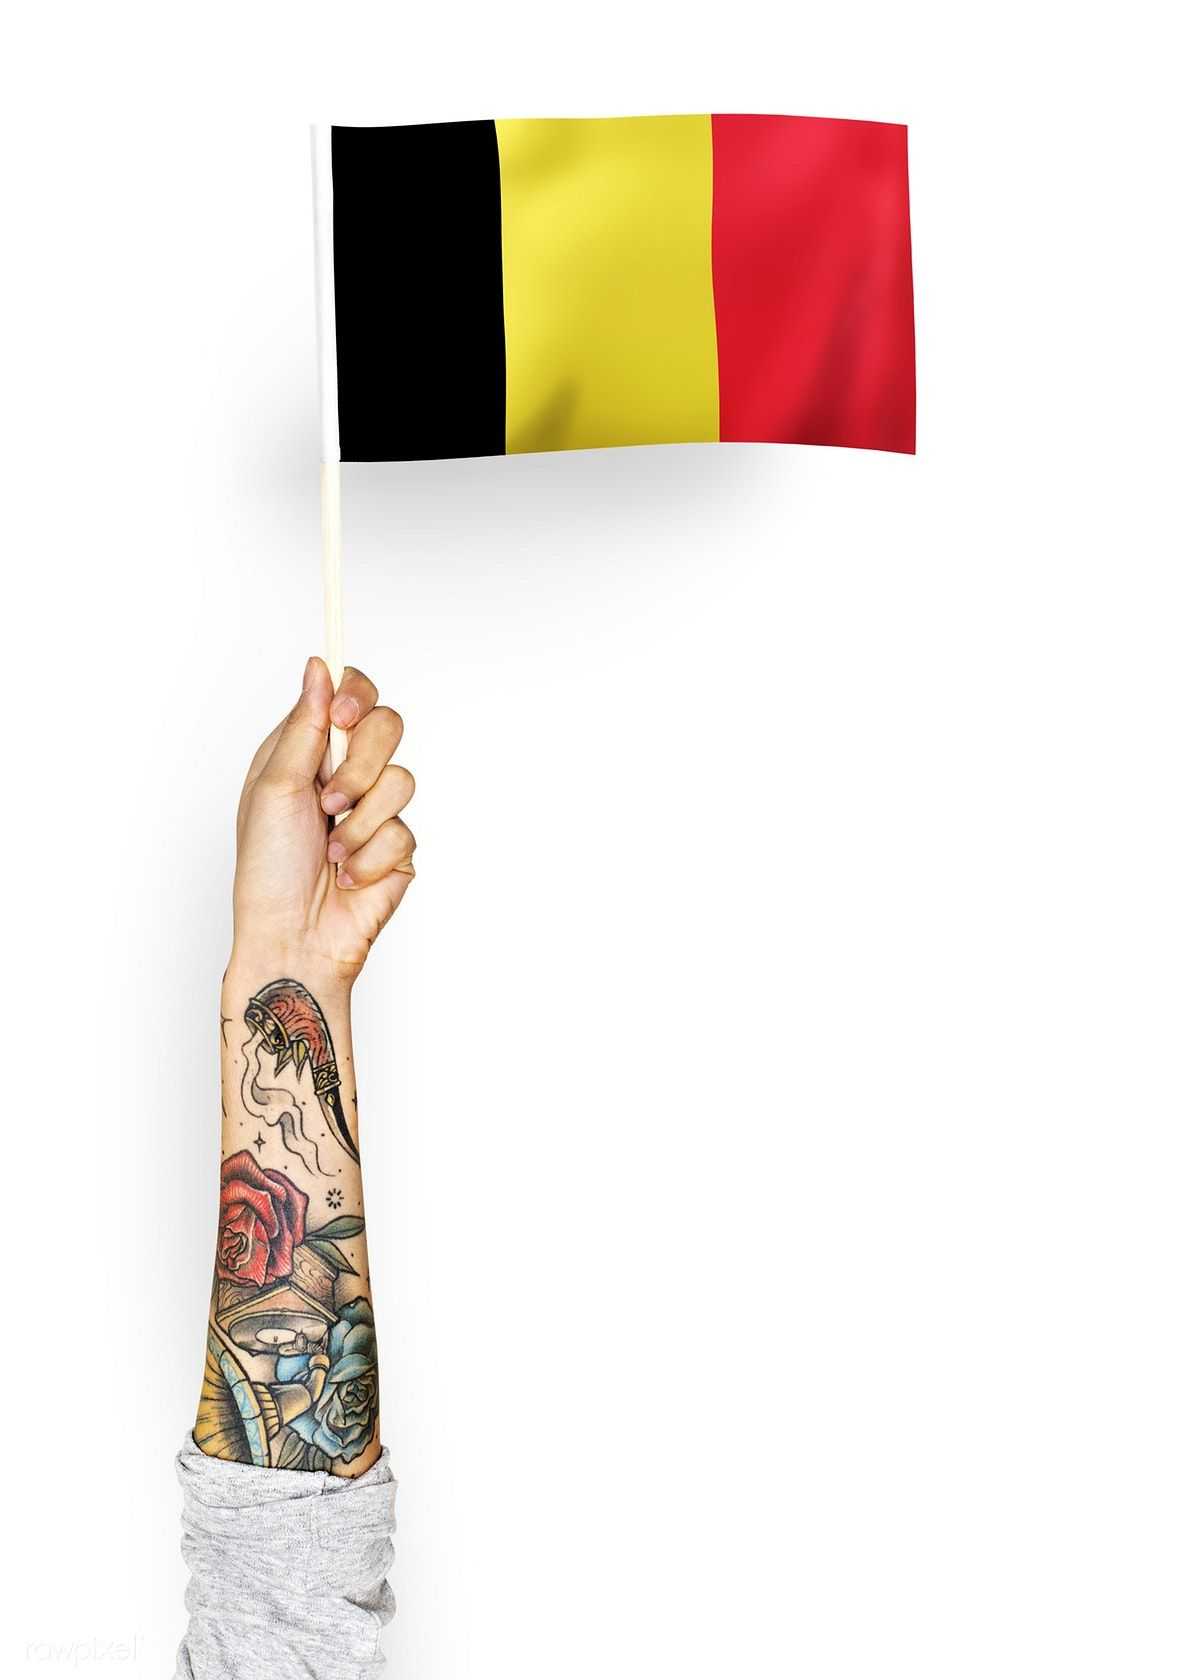 Person Waving The Flag Of Kingdom Of Belgium Free Image By Rawpixel Com Flag Flags Of The World Free Images